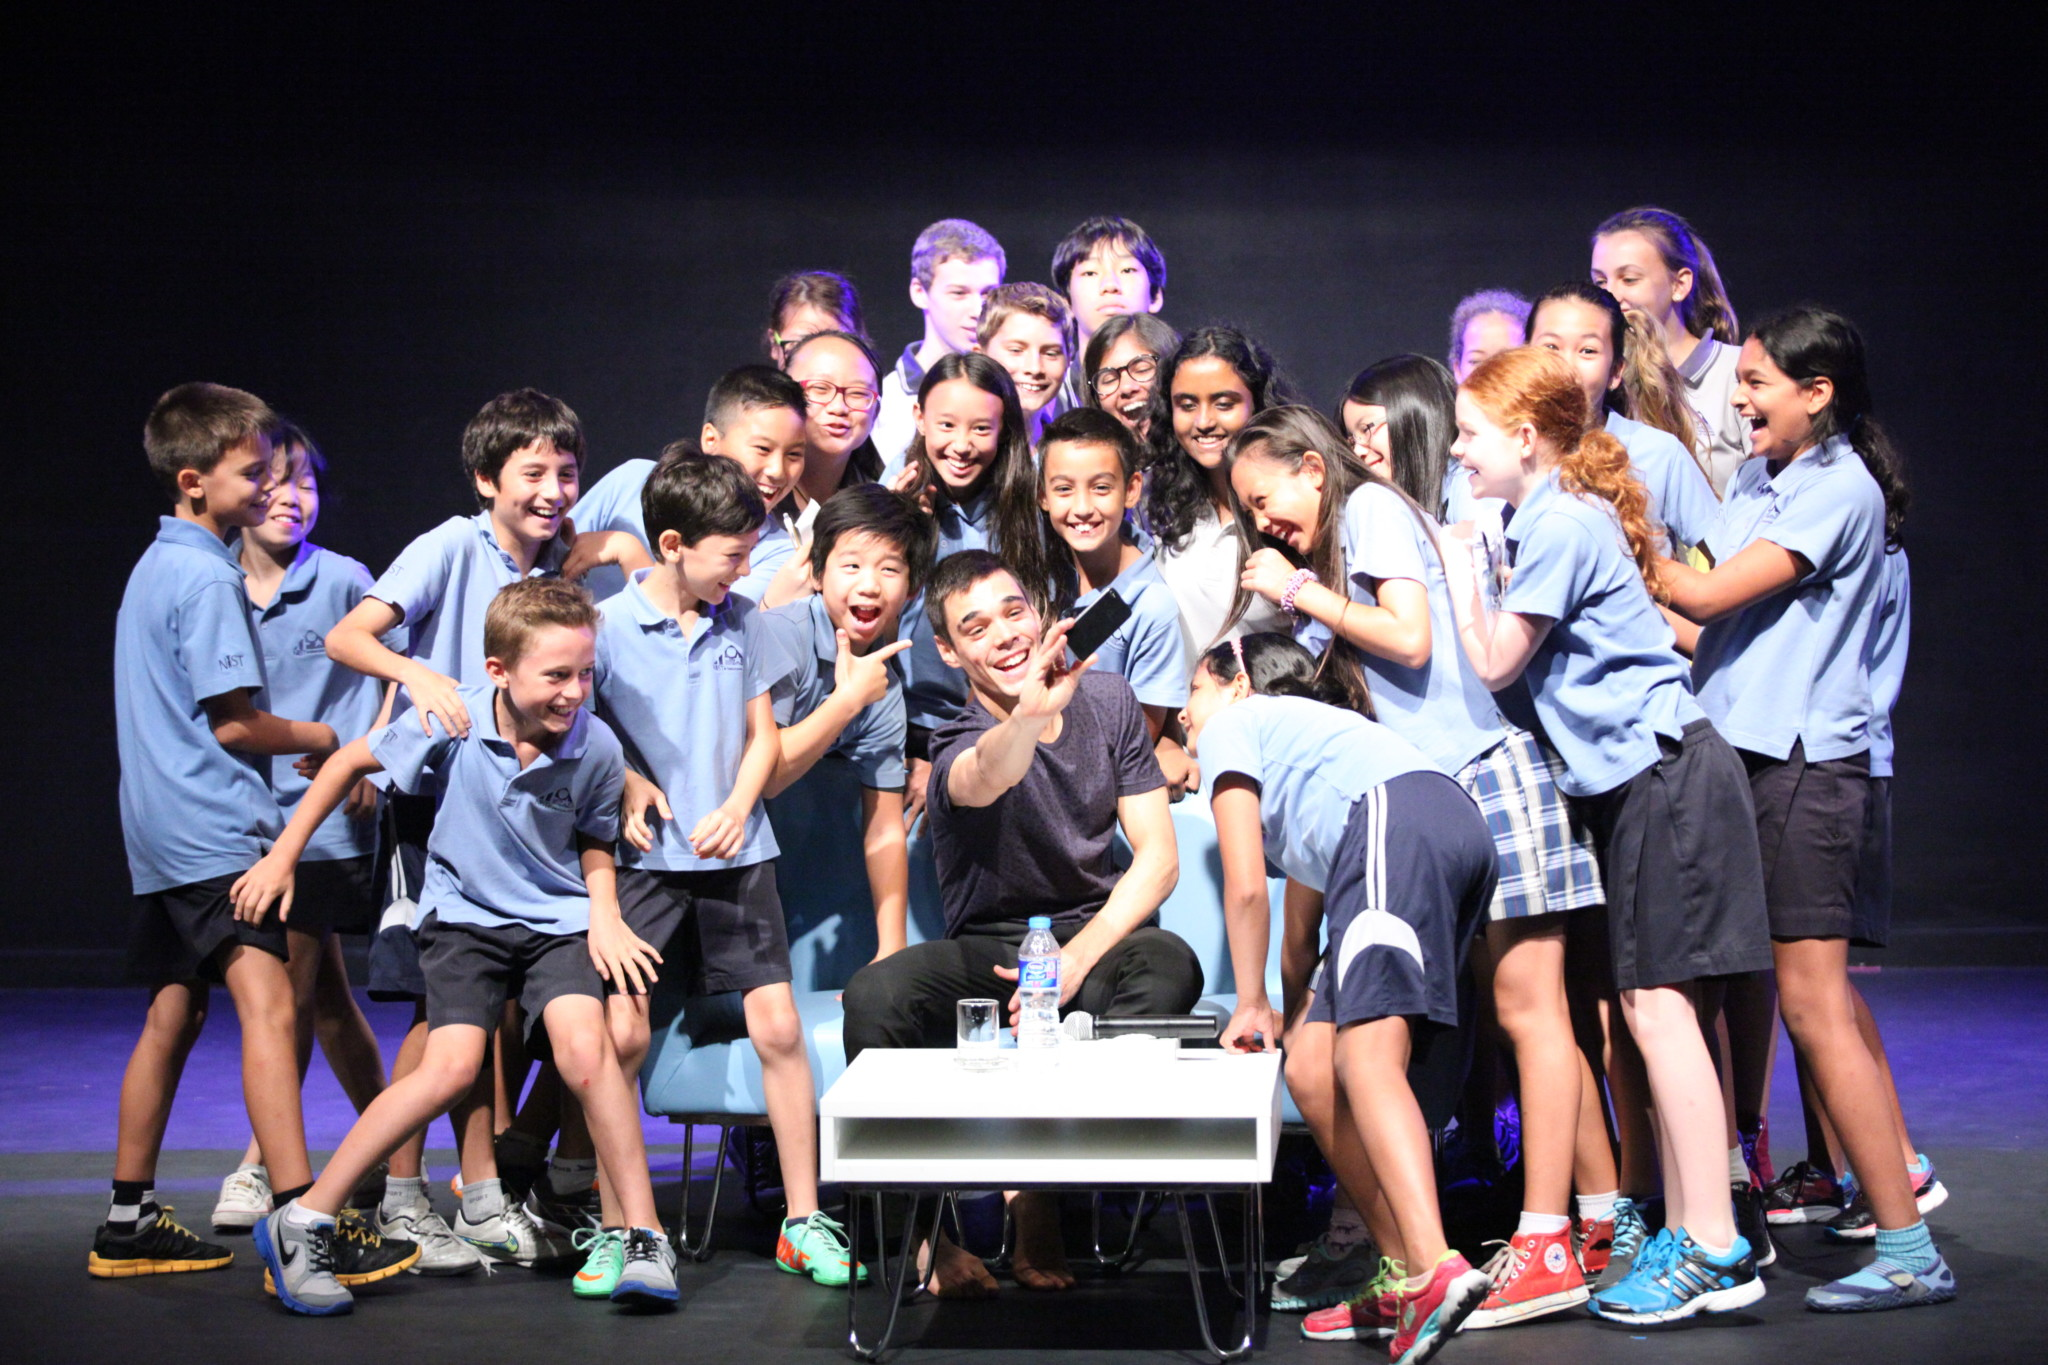 Dance performer David Pereira at NIST International School in Bangkok